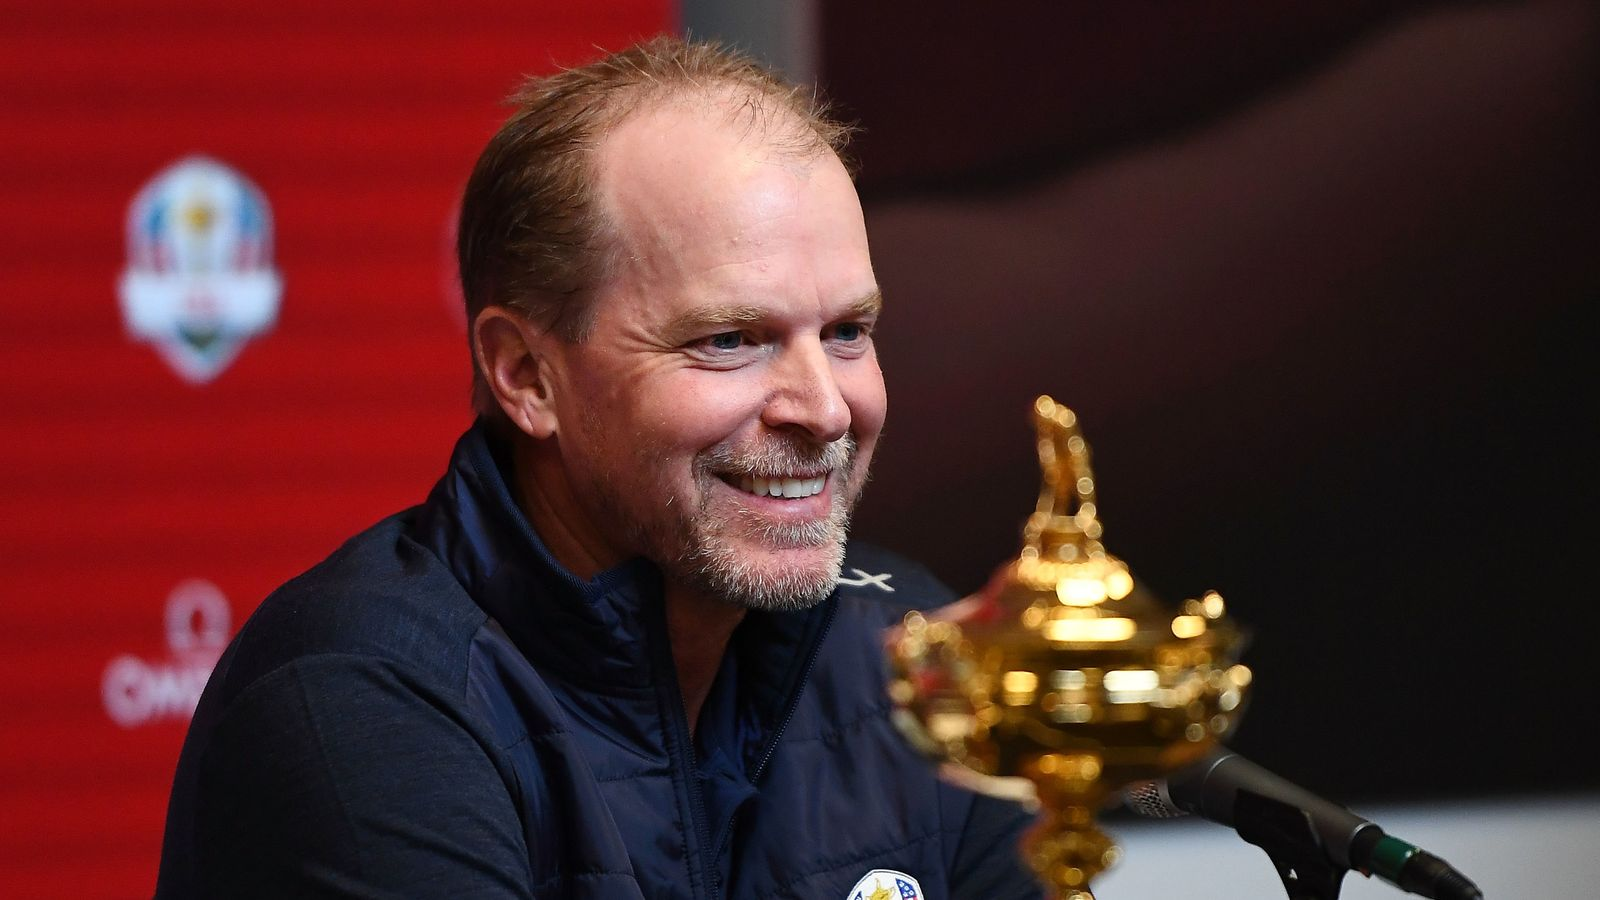 US Ryder Cup captain Steve Stricker says it would be a 'crime' to stage event without fans